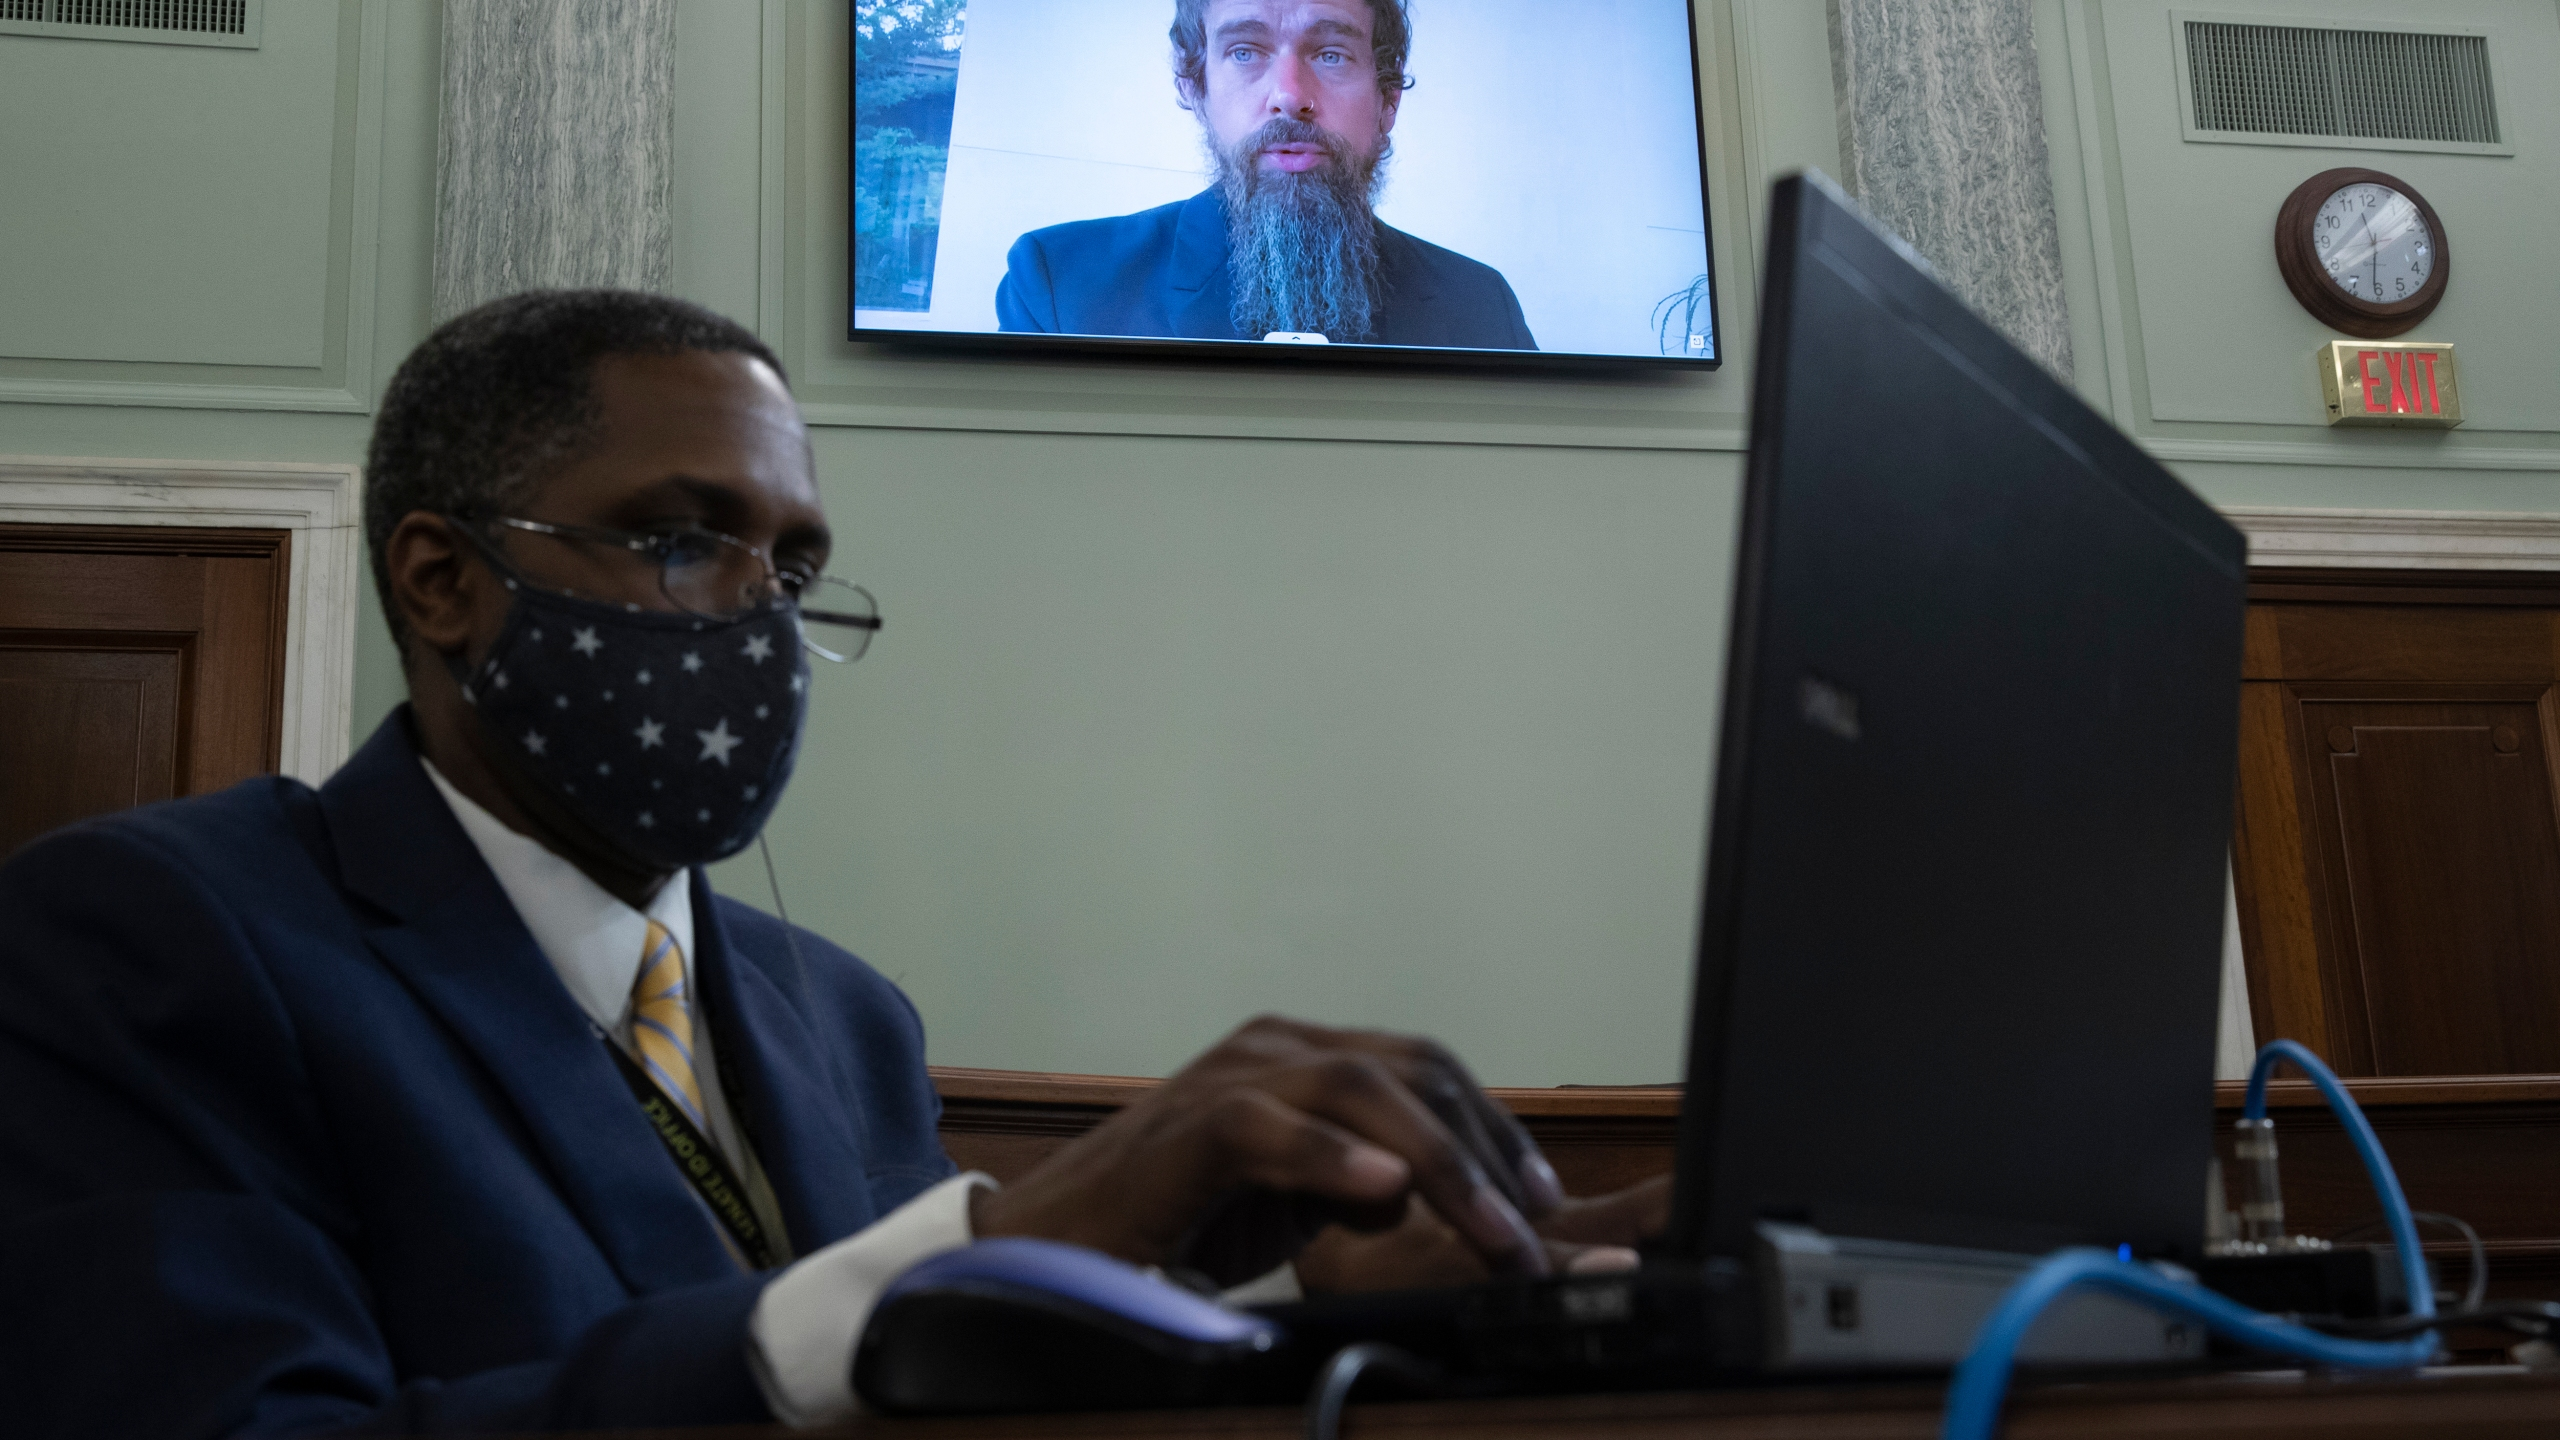 Twitter CEO Jack Dorsey appears on a screen as he speaks remotely during a hearing before the Senate Commerce Committee on Oct. 28, 2020. (Michael Reynolds/Pool via Associated Press)